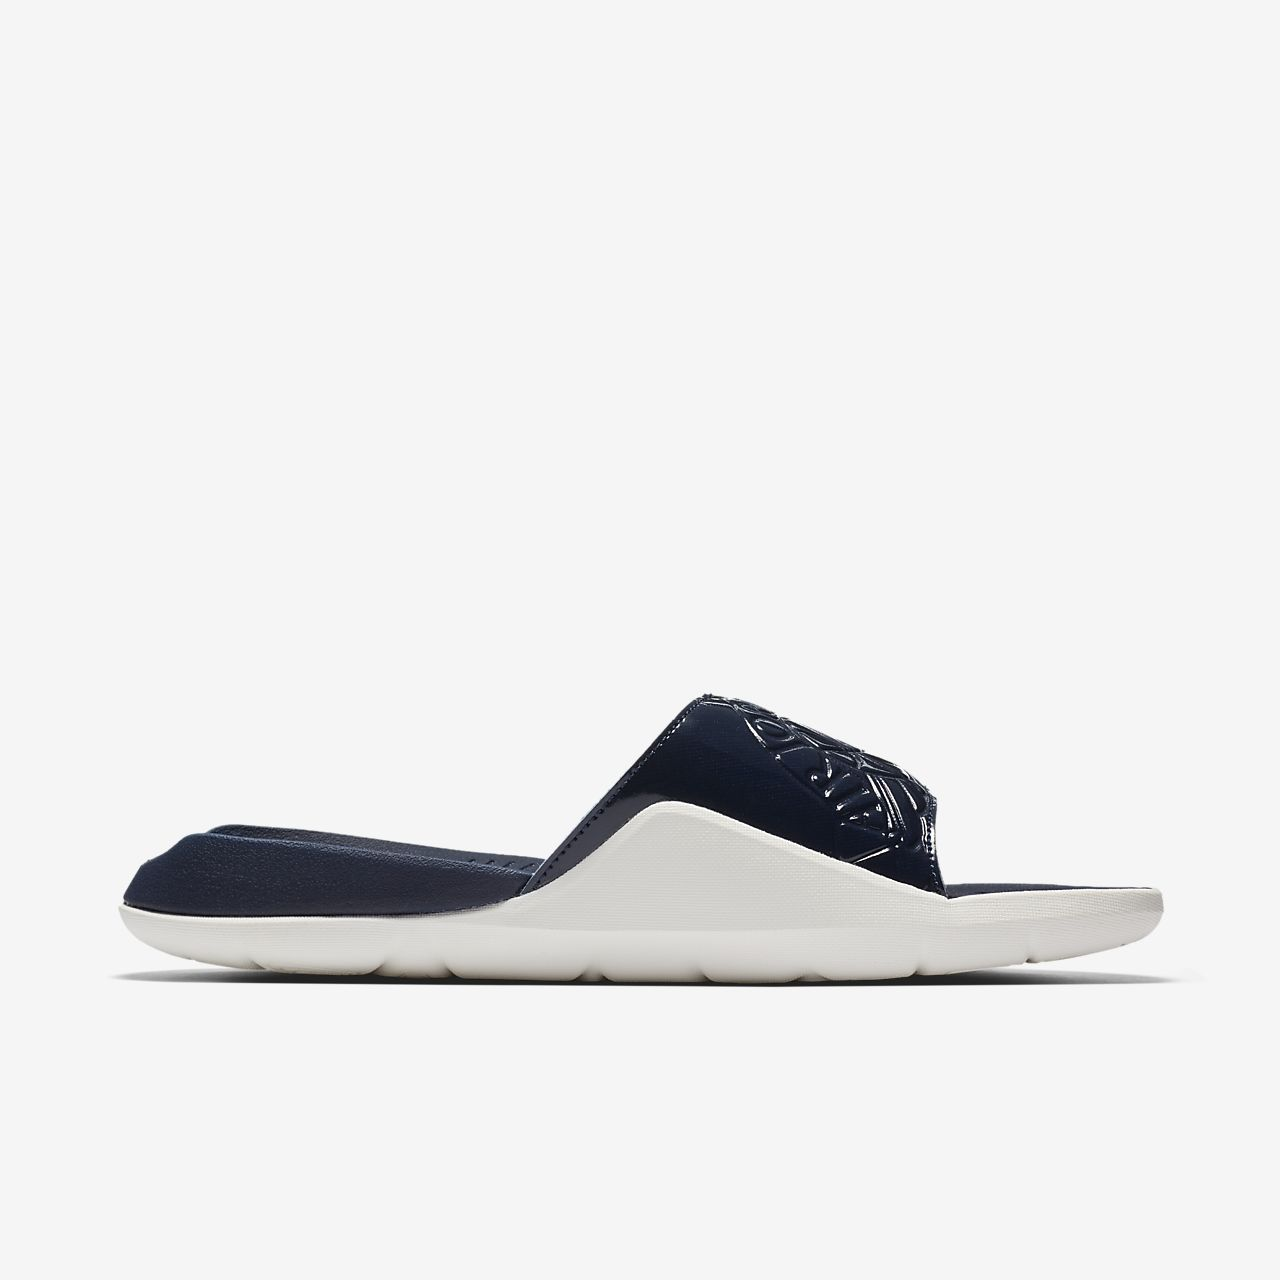 15f2d91624e1  50 Jordan Hydro 7 RE2PECT Men s Slide SOLD by NIKE.com The Jordan Hydro 7  RE2PECT Men s Slide provides a cushioned footbed and adjustable strap for  all-day ...